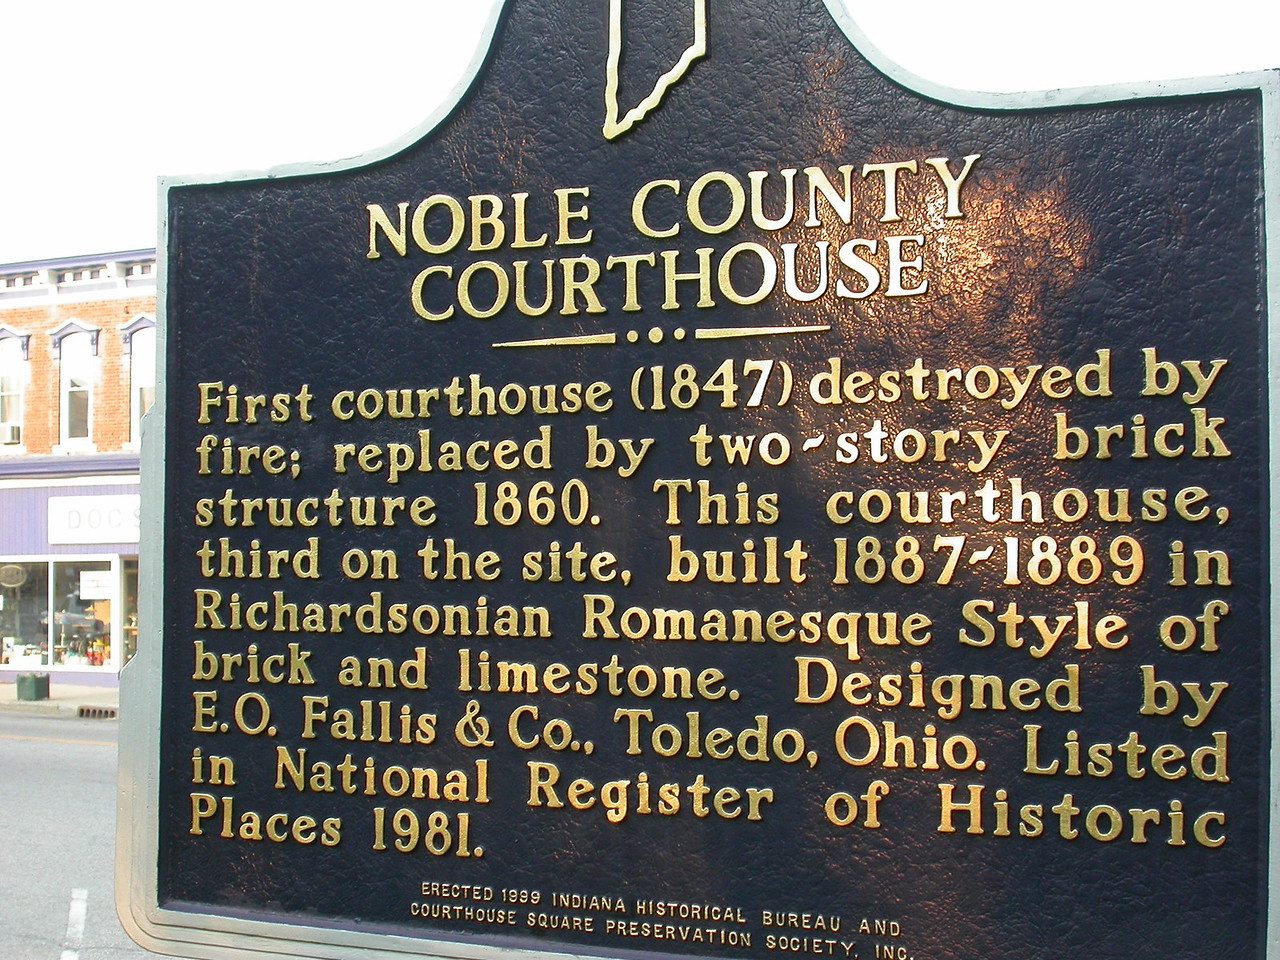 See the Courthouse Gallery for a photo of the Noble County Courthouse.